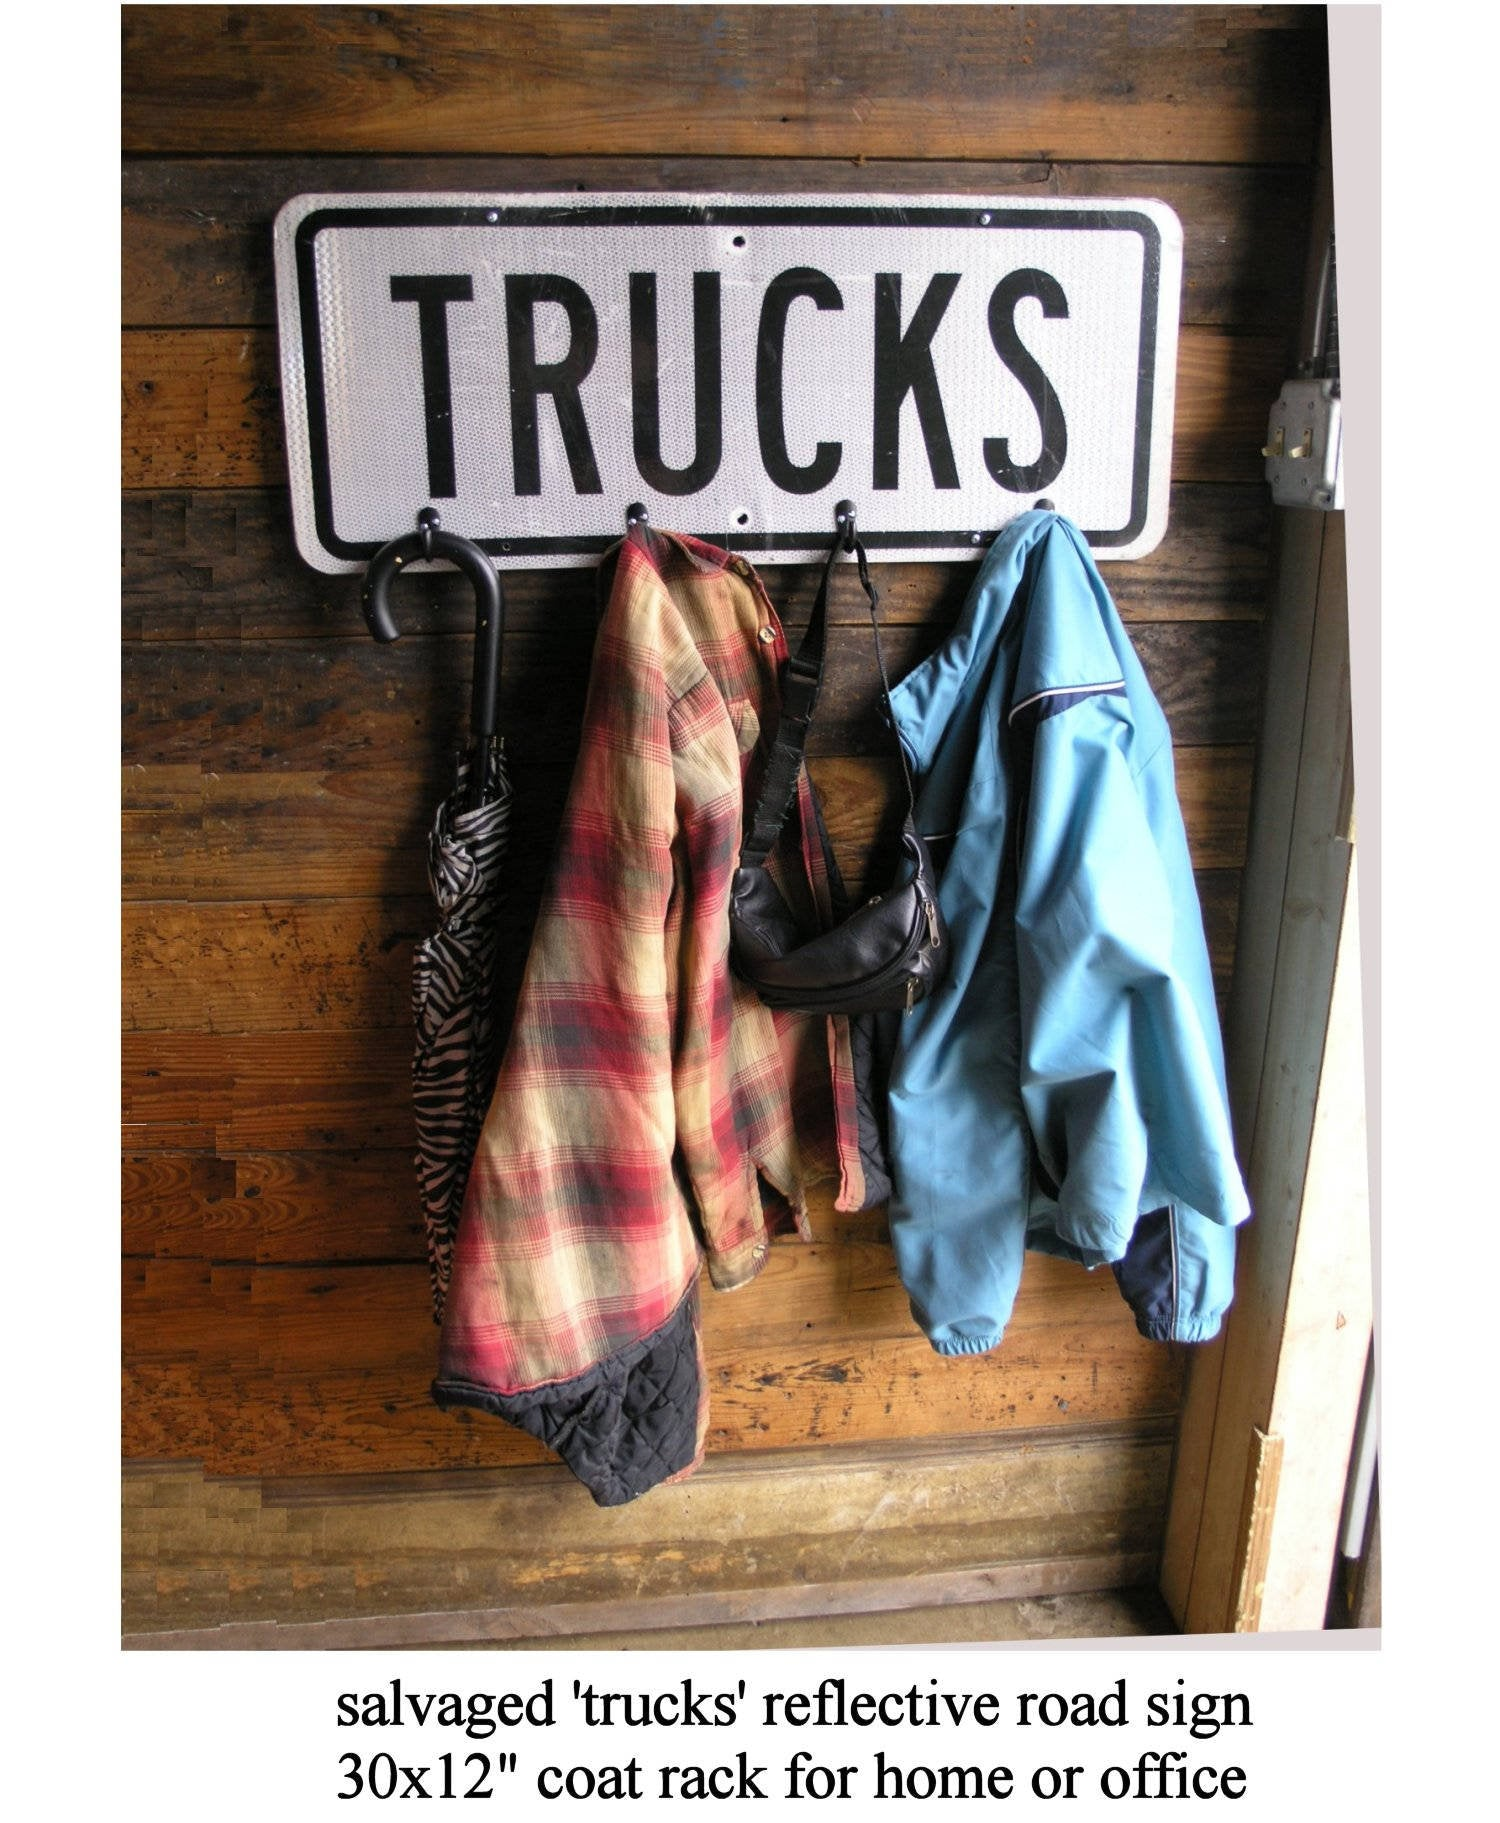 upcycled trucks street sign, wall mount coat rack, manly gift idea